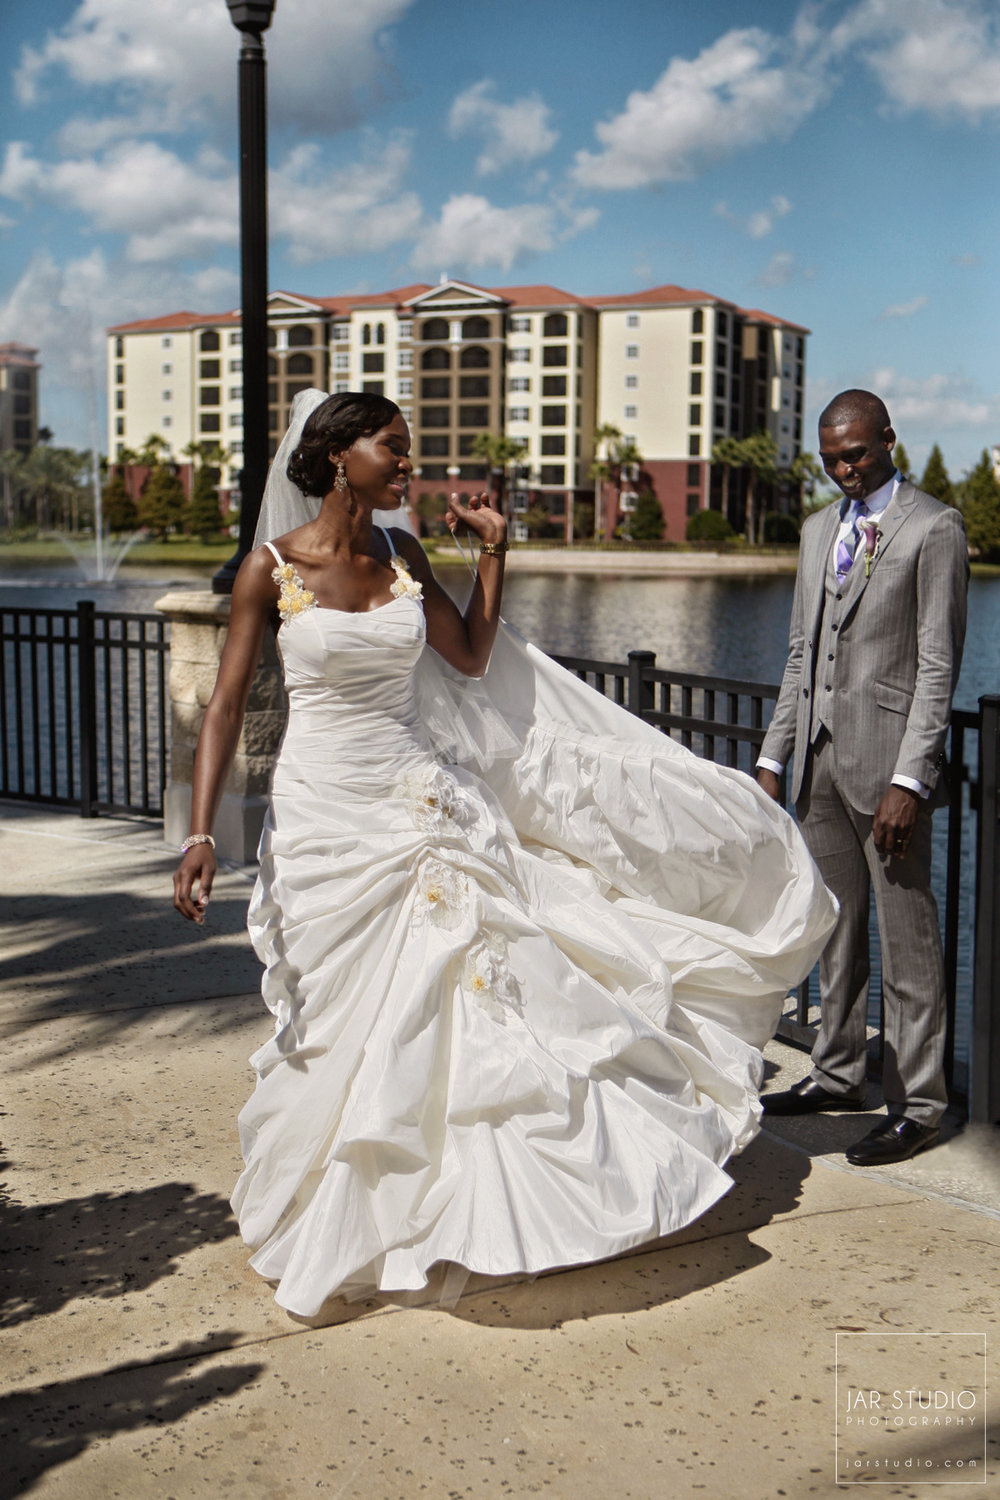 25-orlando-resorts-destination-wedding-photographer-jarstudio.JPG